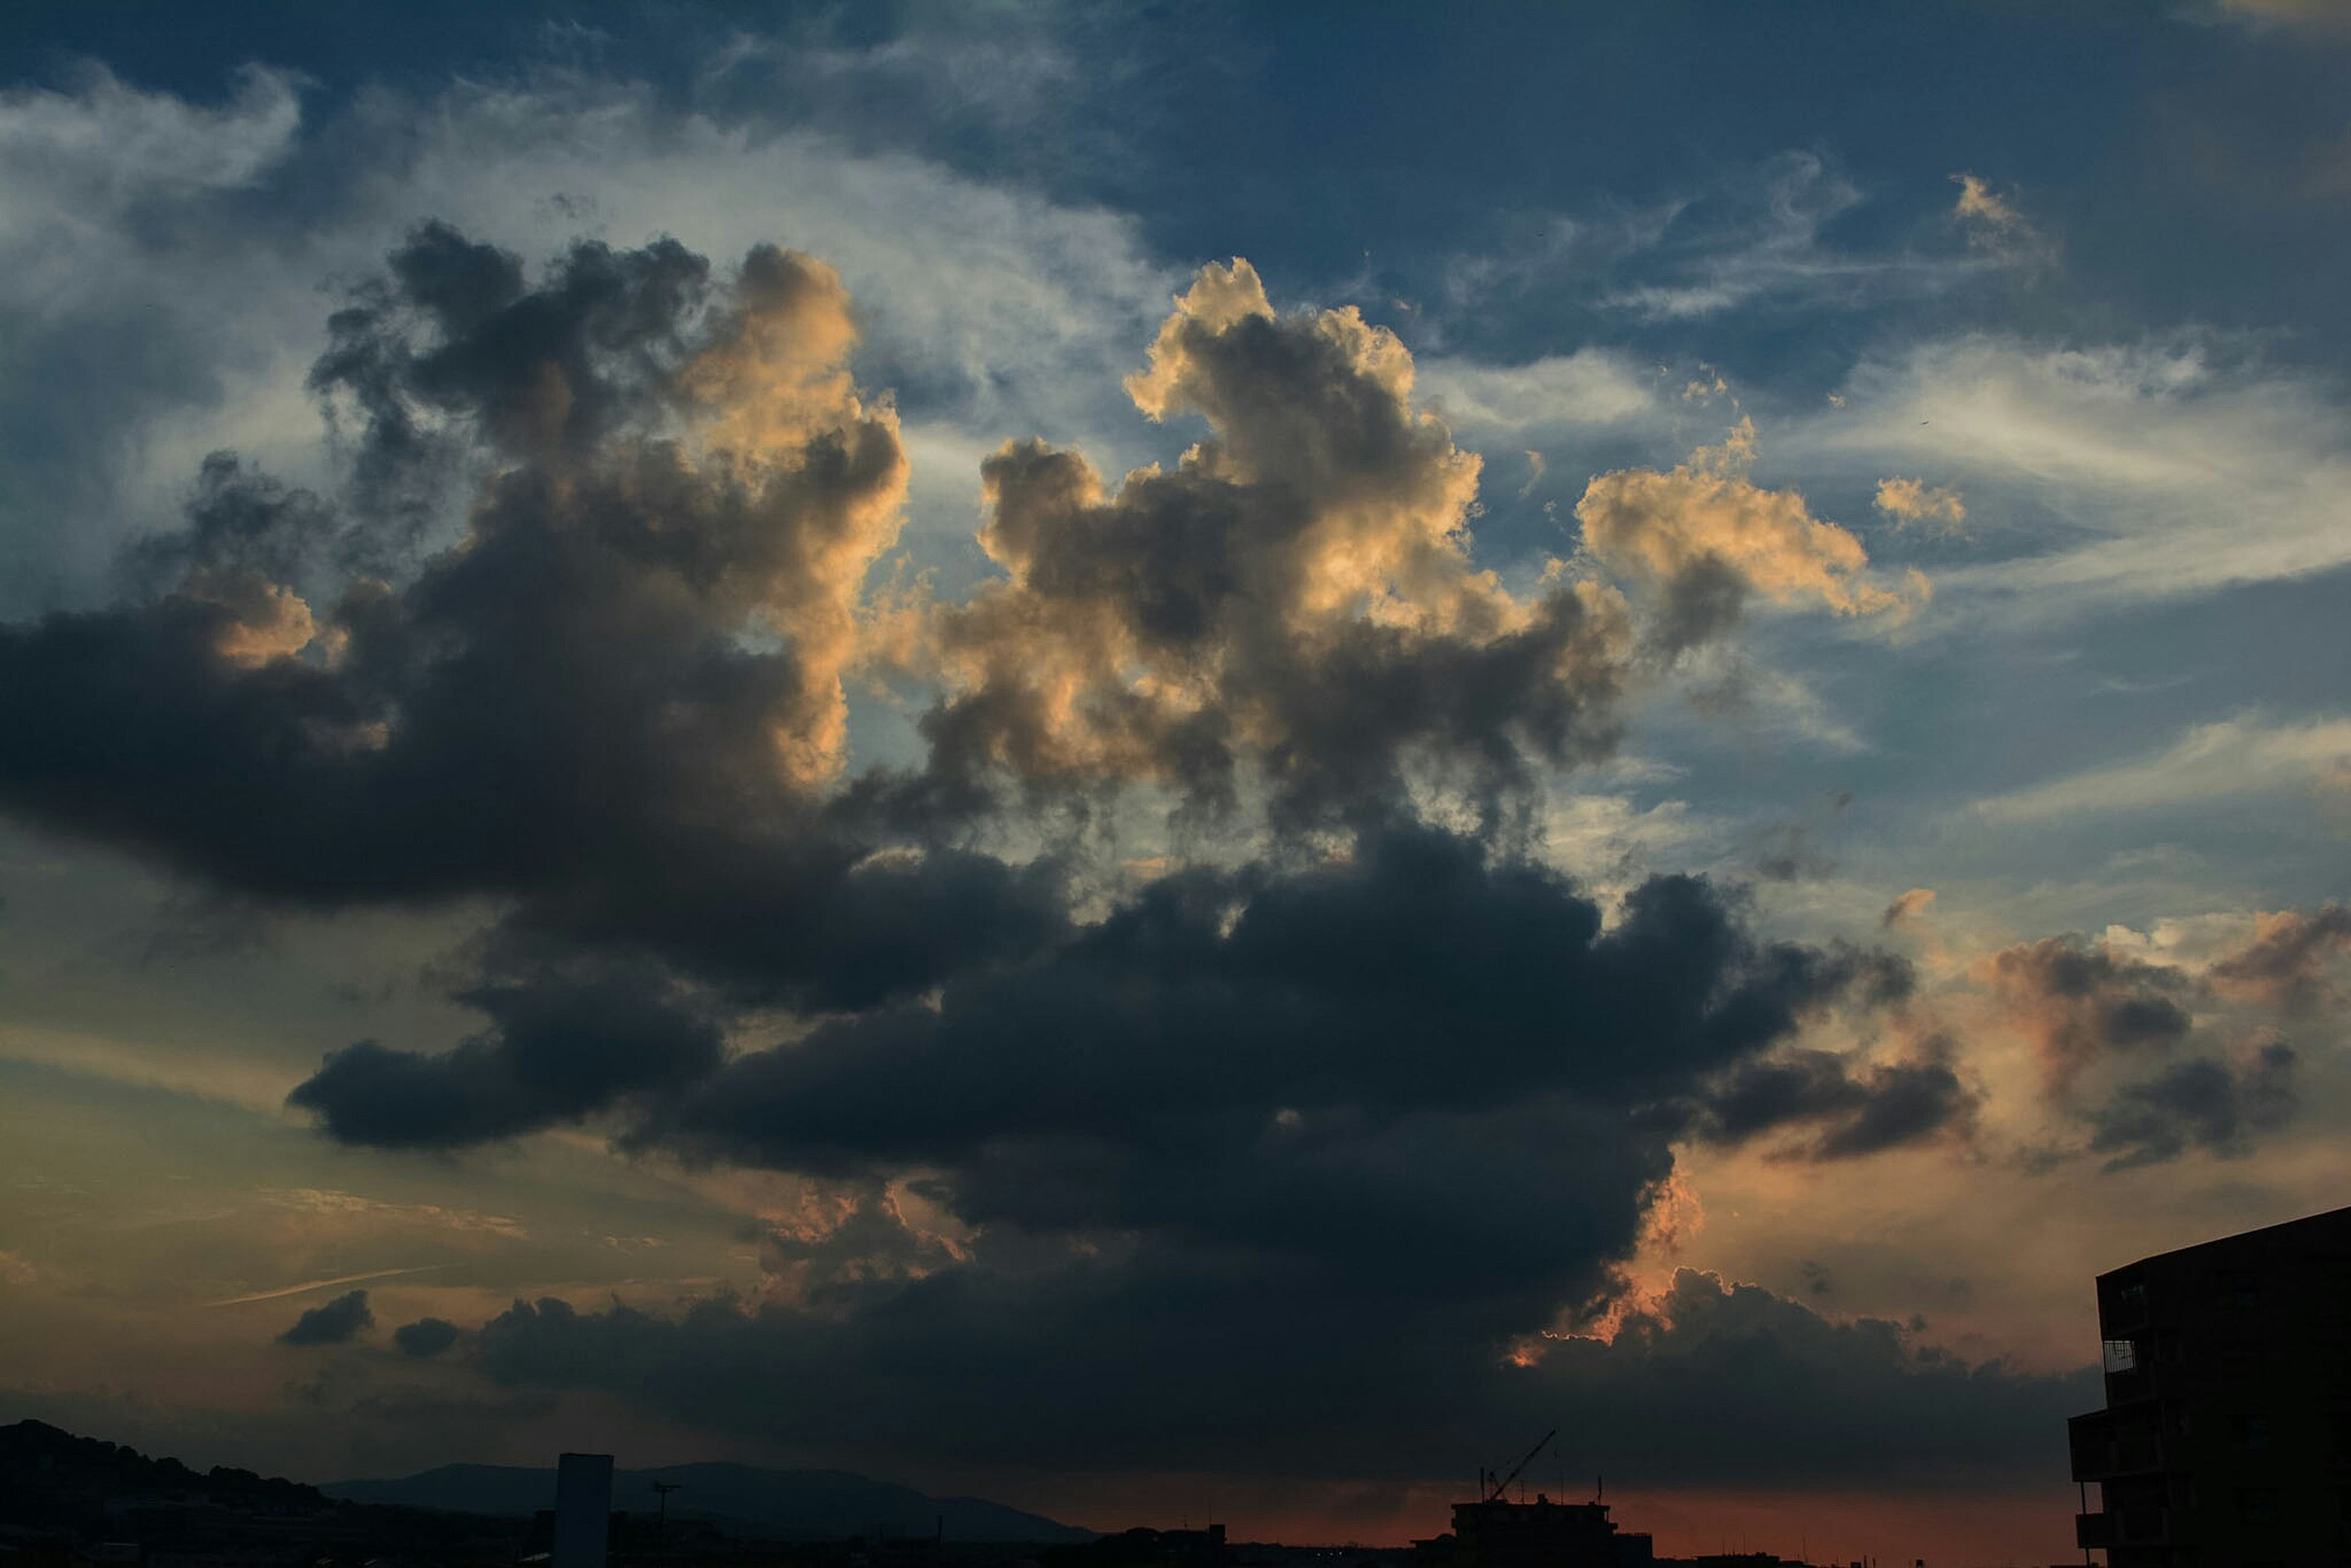 sky, cloud - sky, dramatic sky, beauty in nature, nature, sunset, no people, low angle view, scenics, silhouette, outdoors, tranquility, storm cloud, architecture, day